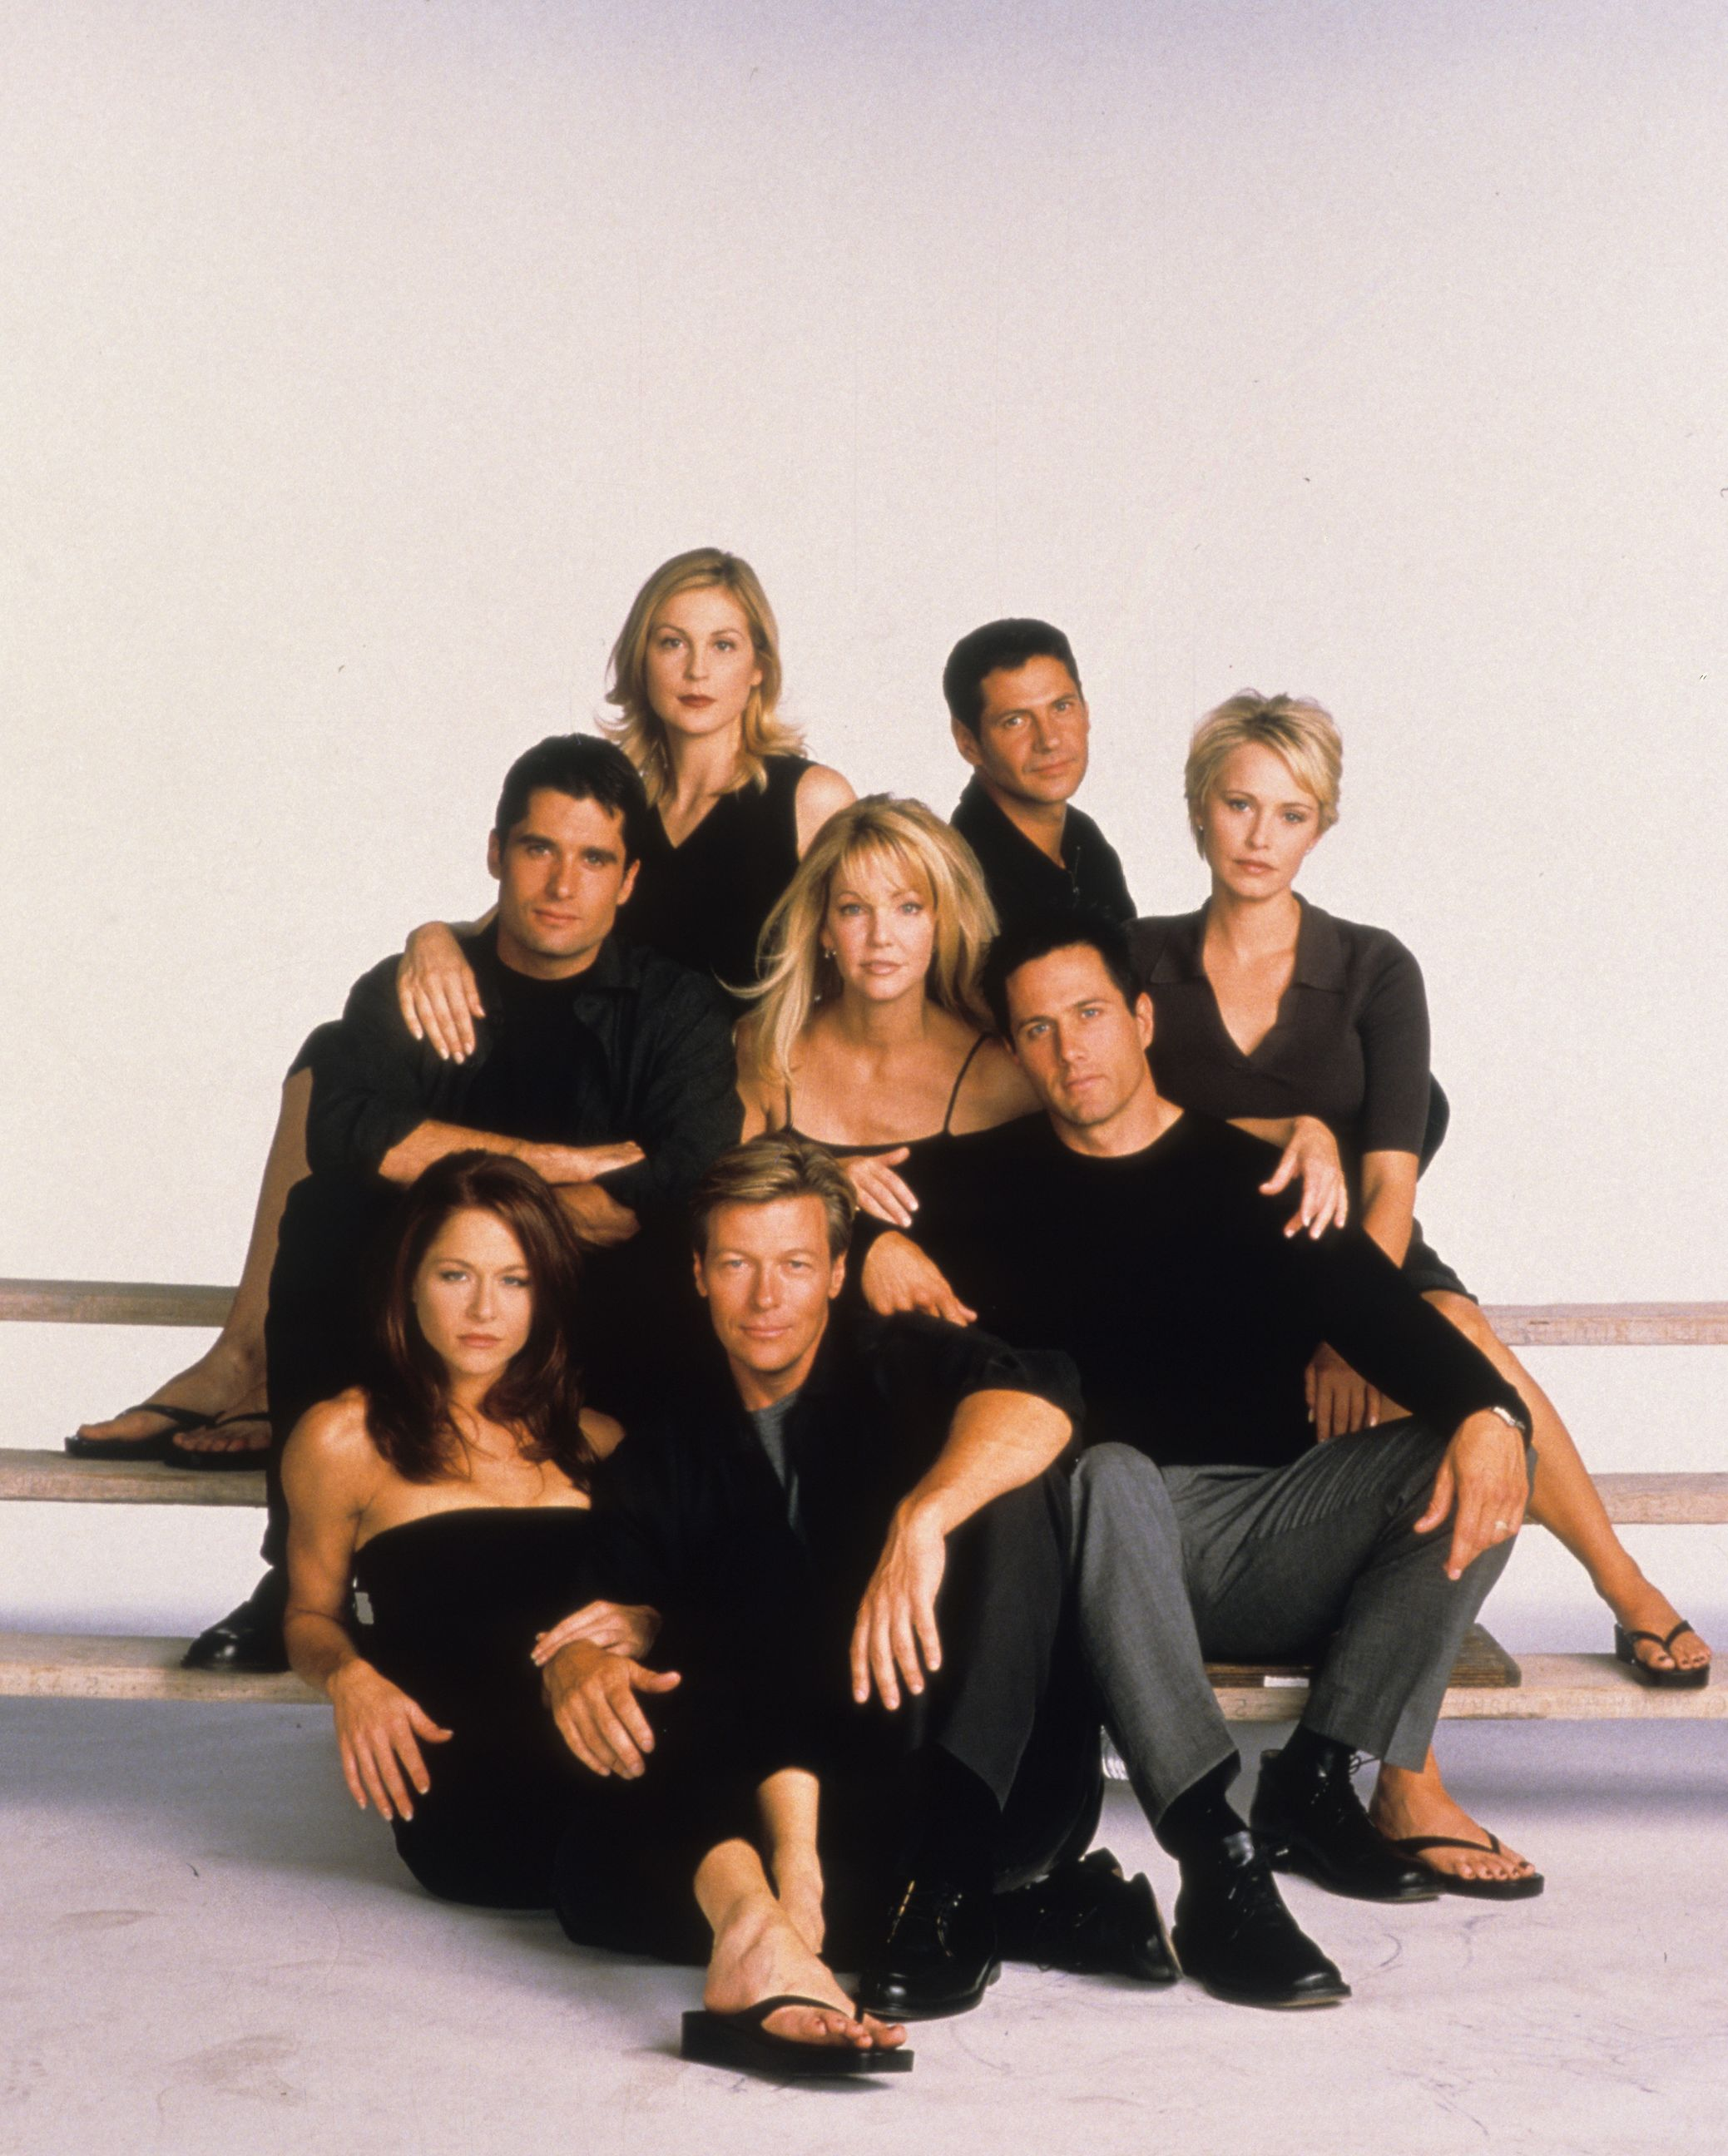 Los Angeles Apartments Melrose: Melrose Place TV Series